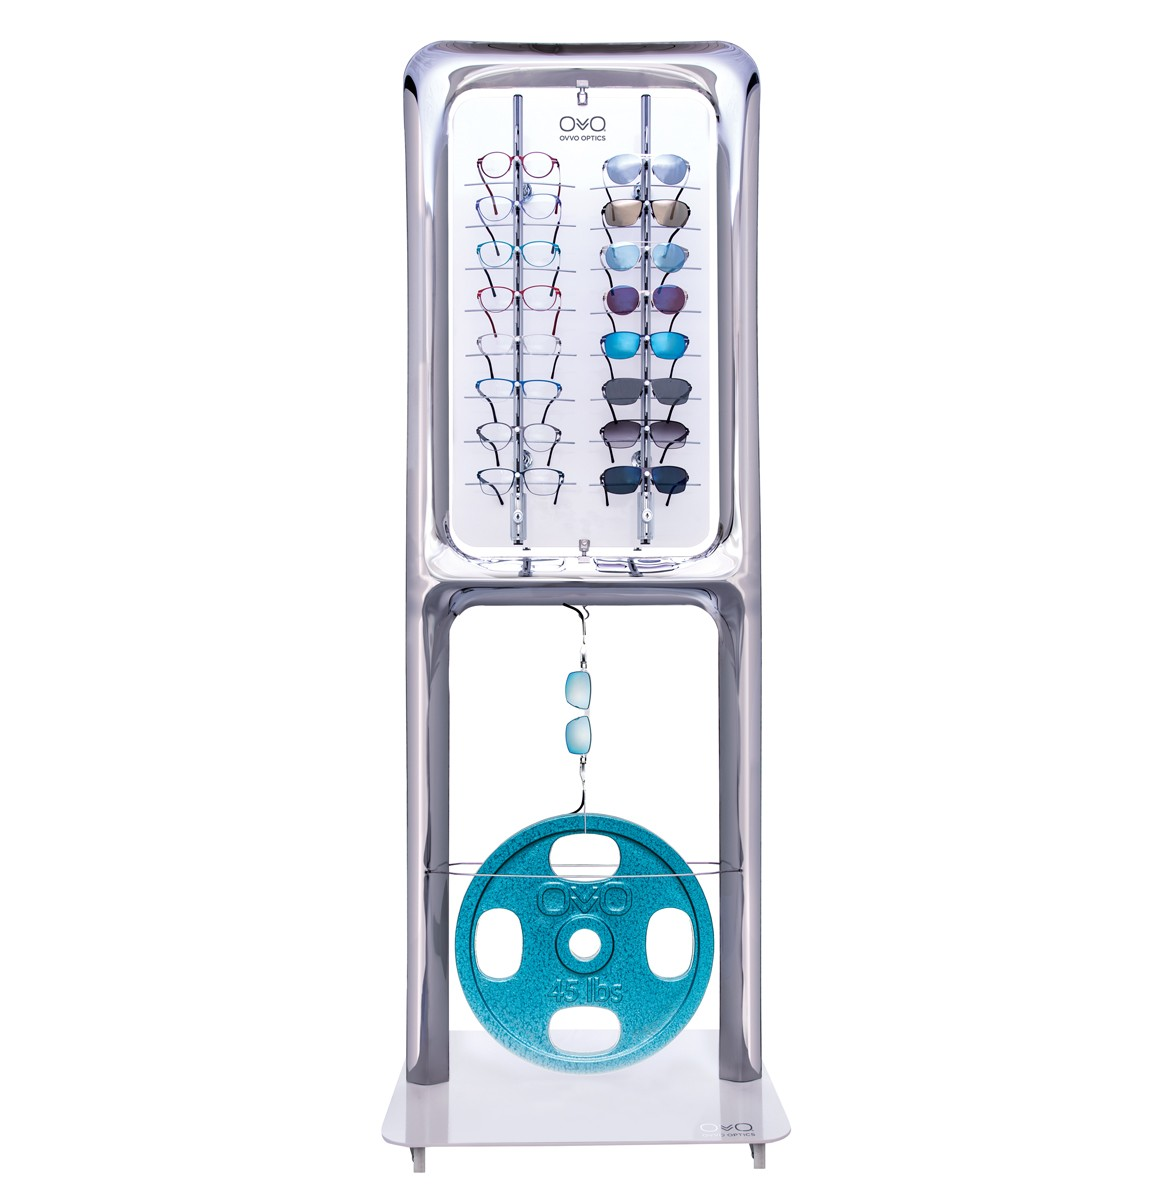 OVVO 32-Piece Display Gen. 4